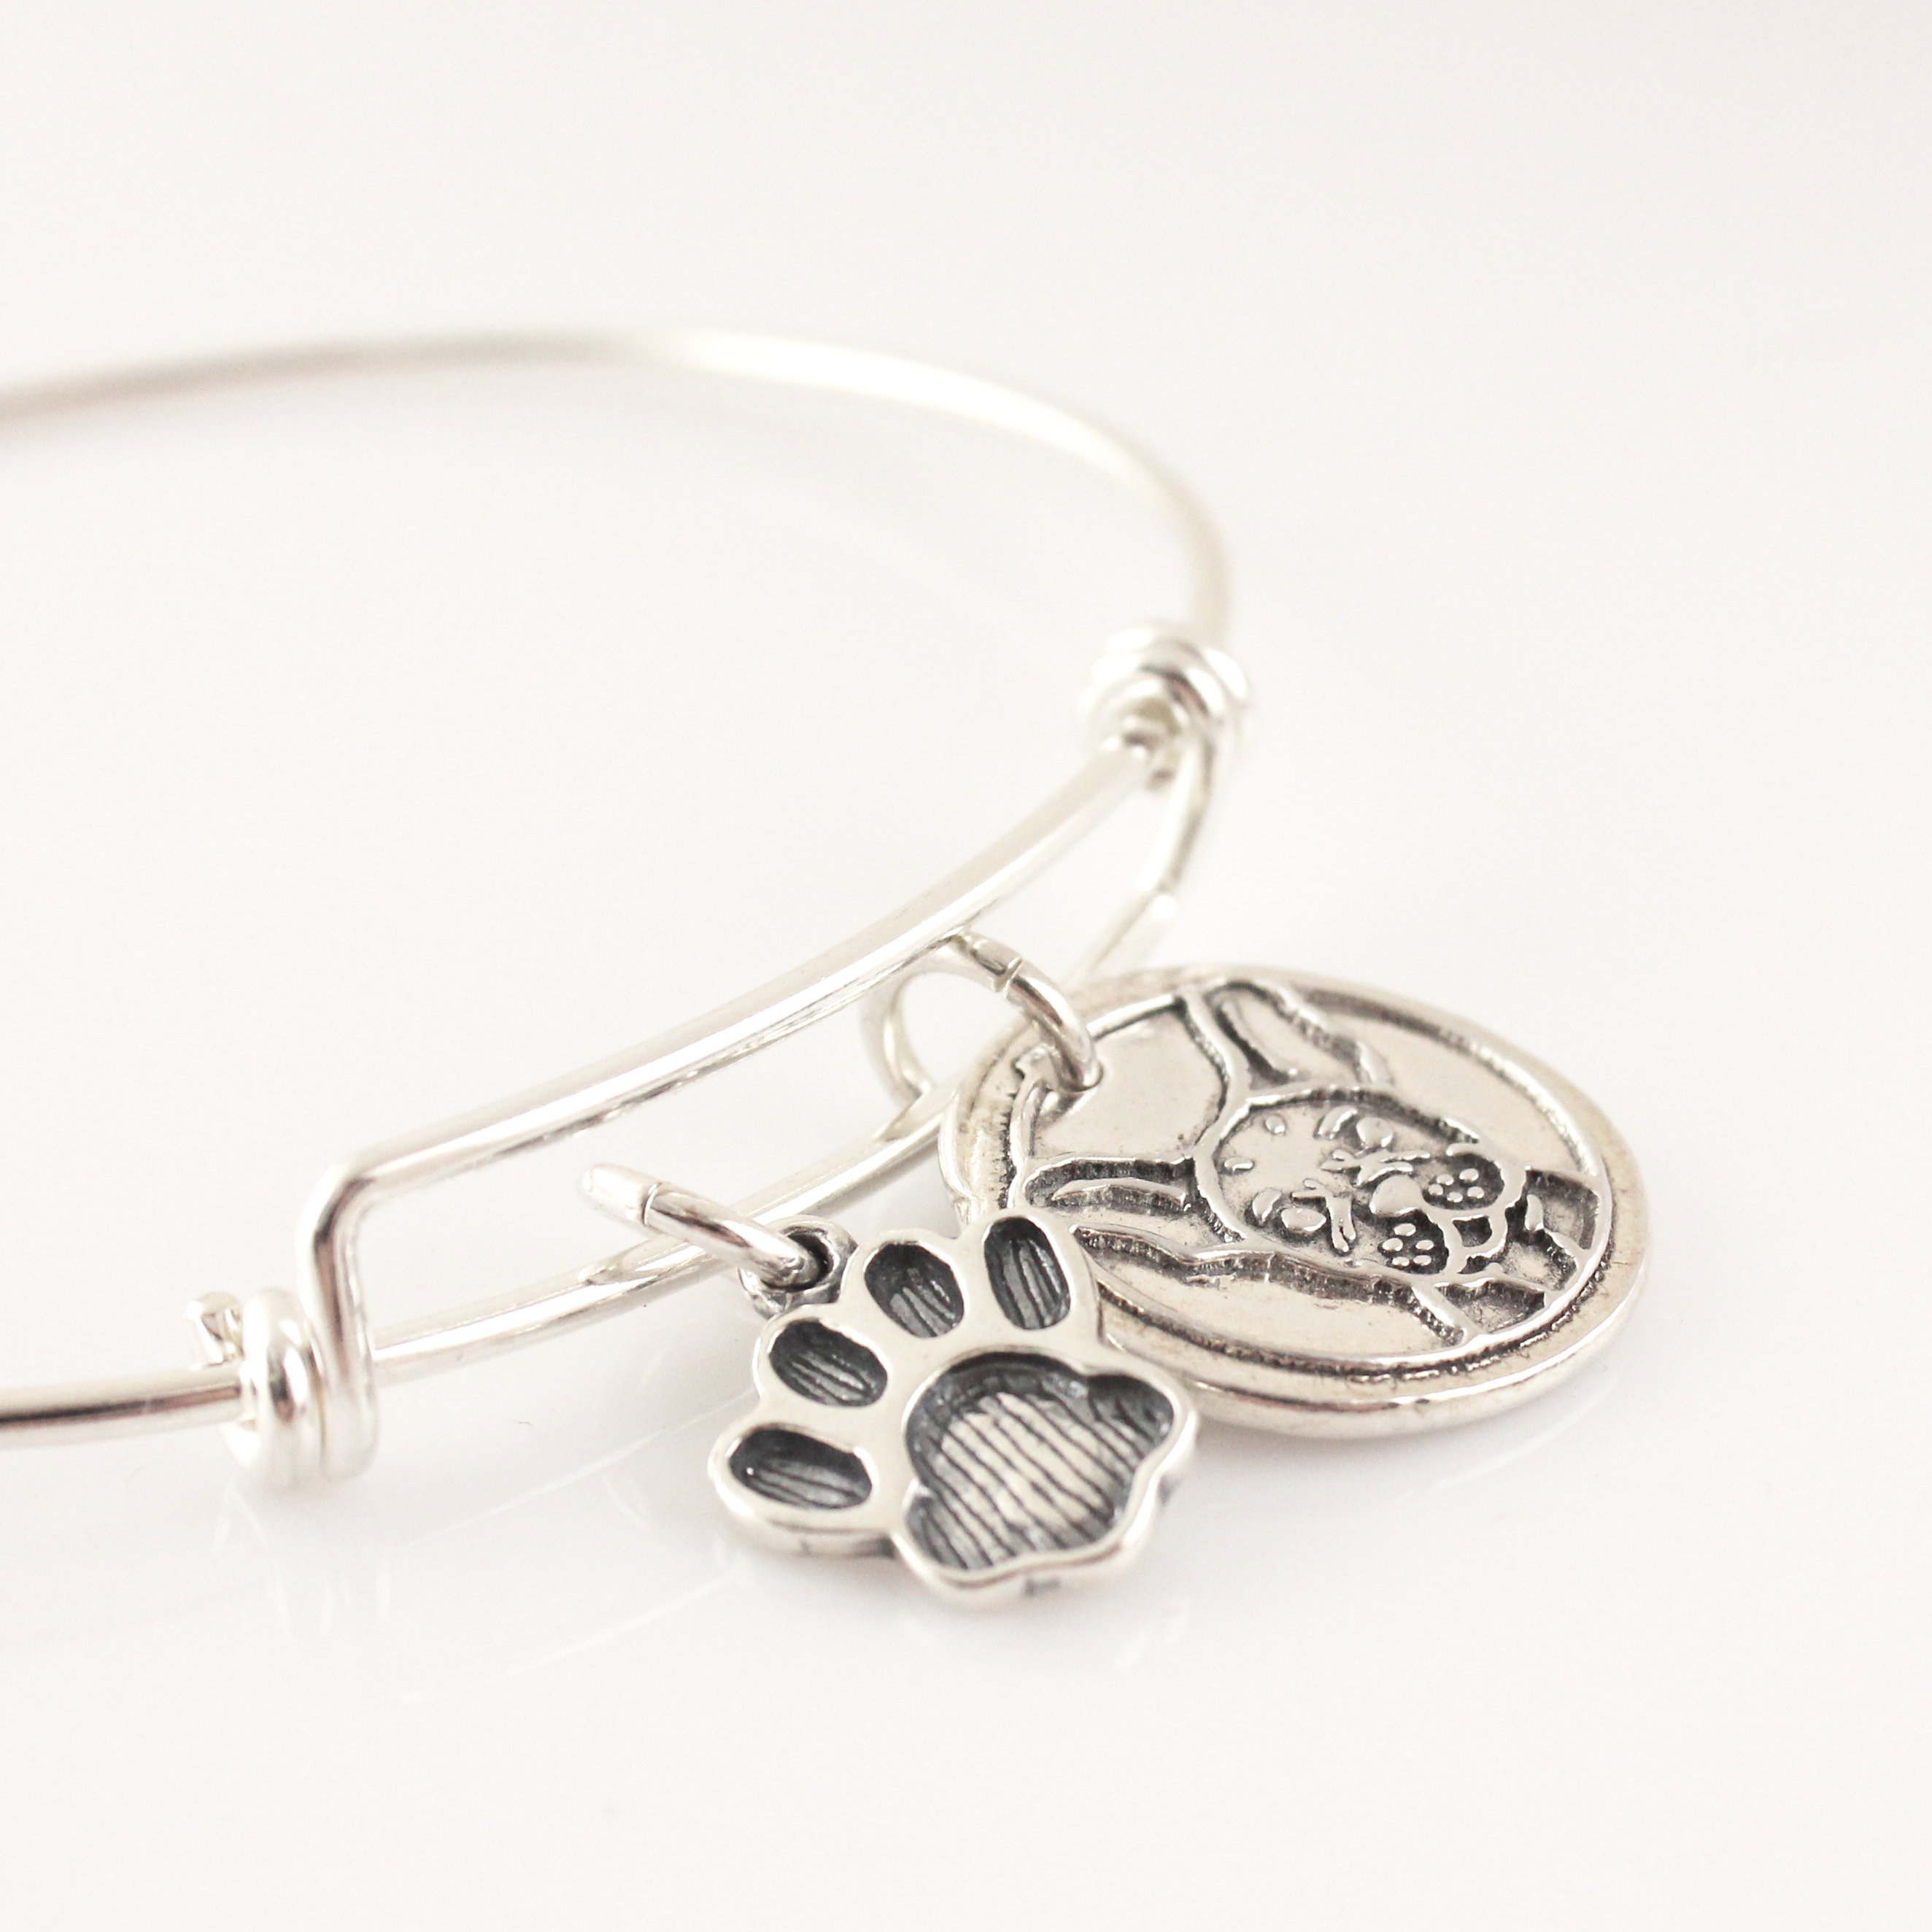 Dog Breed Bangle / Good Dog Wax Seal Inspired Bracelet - great to add charms to!